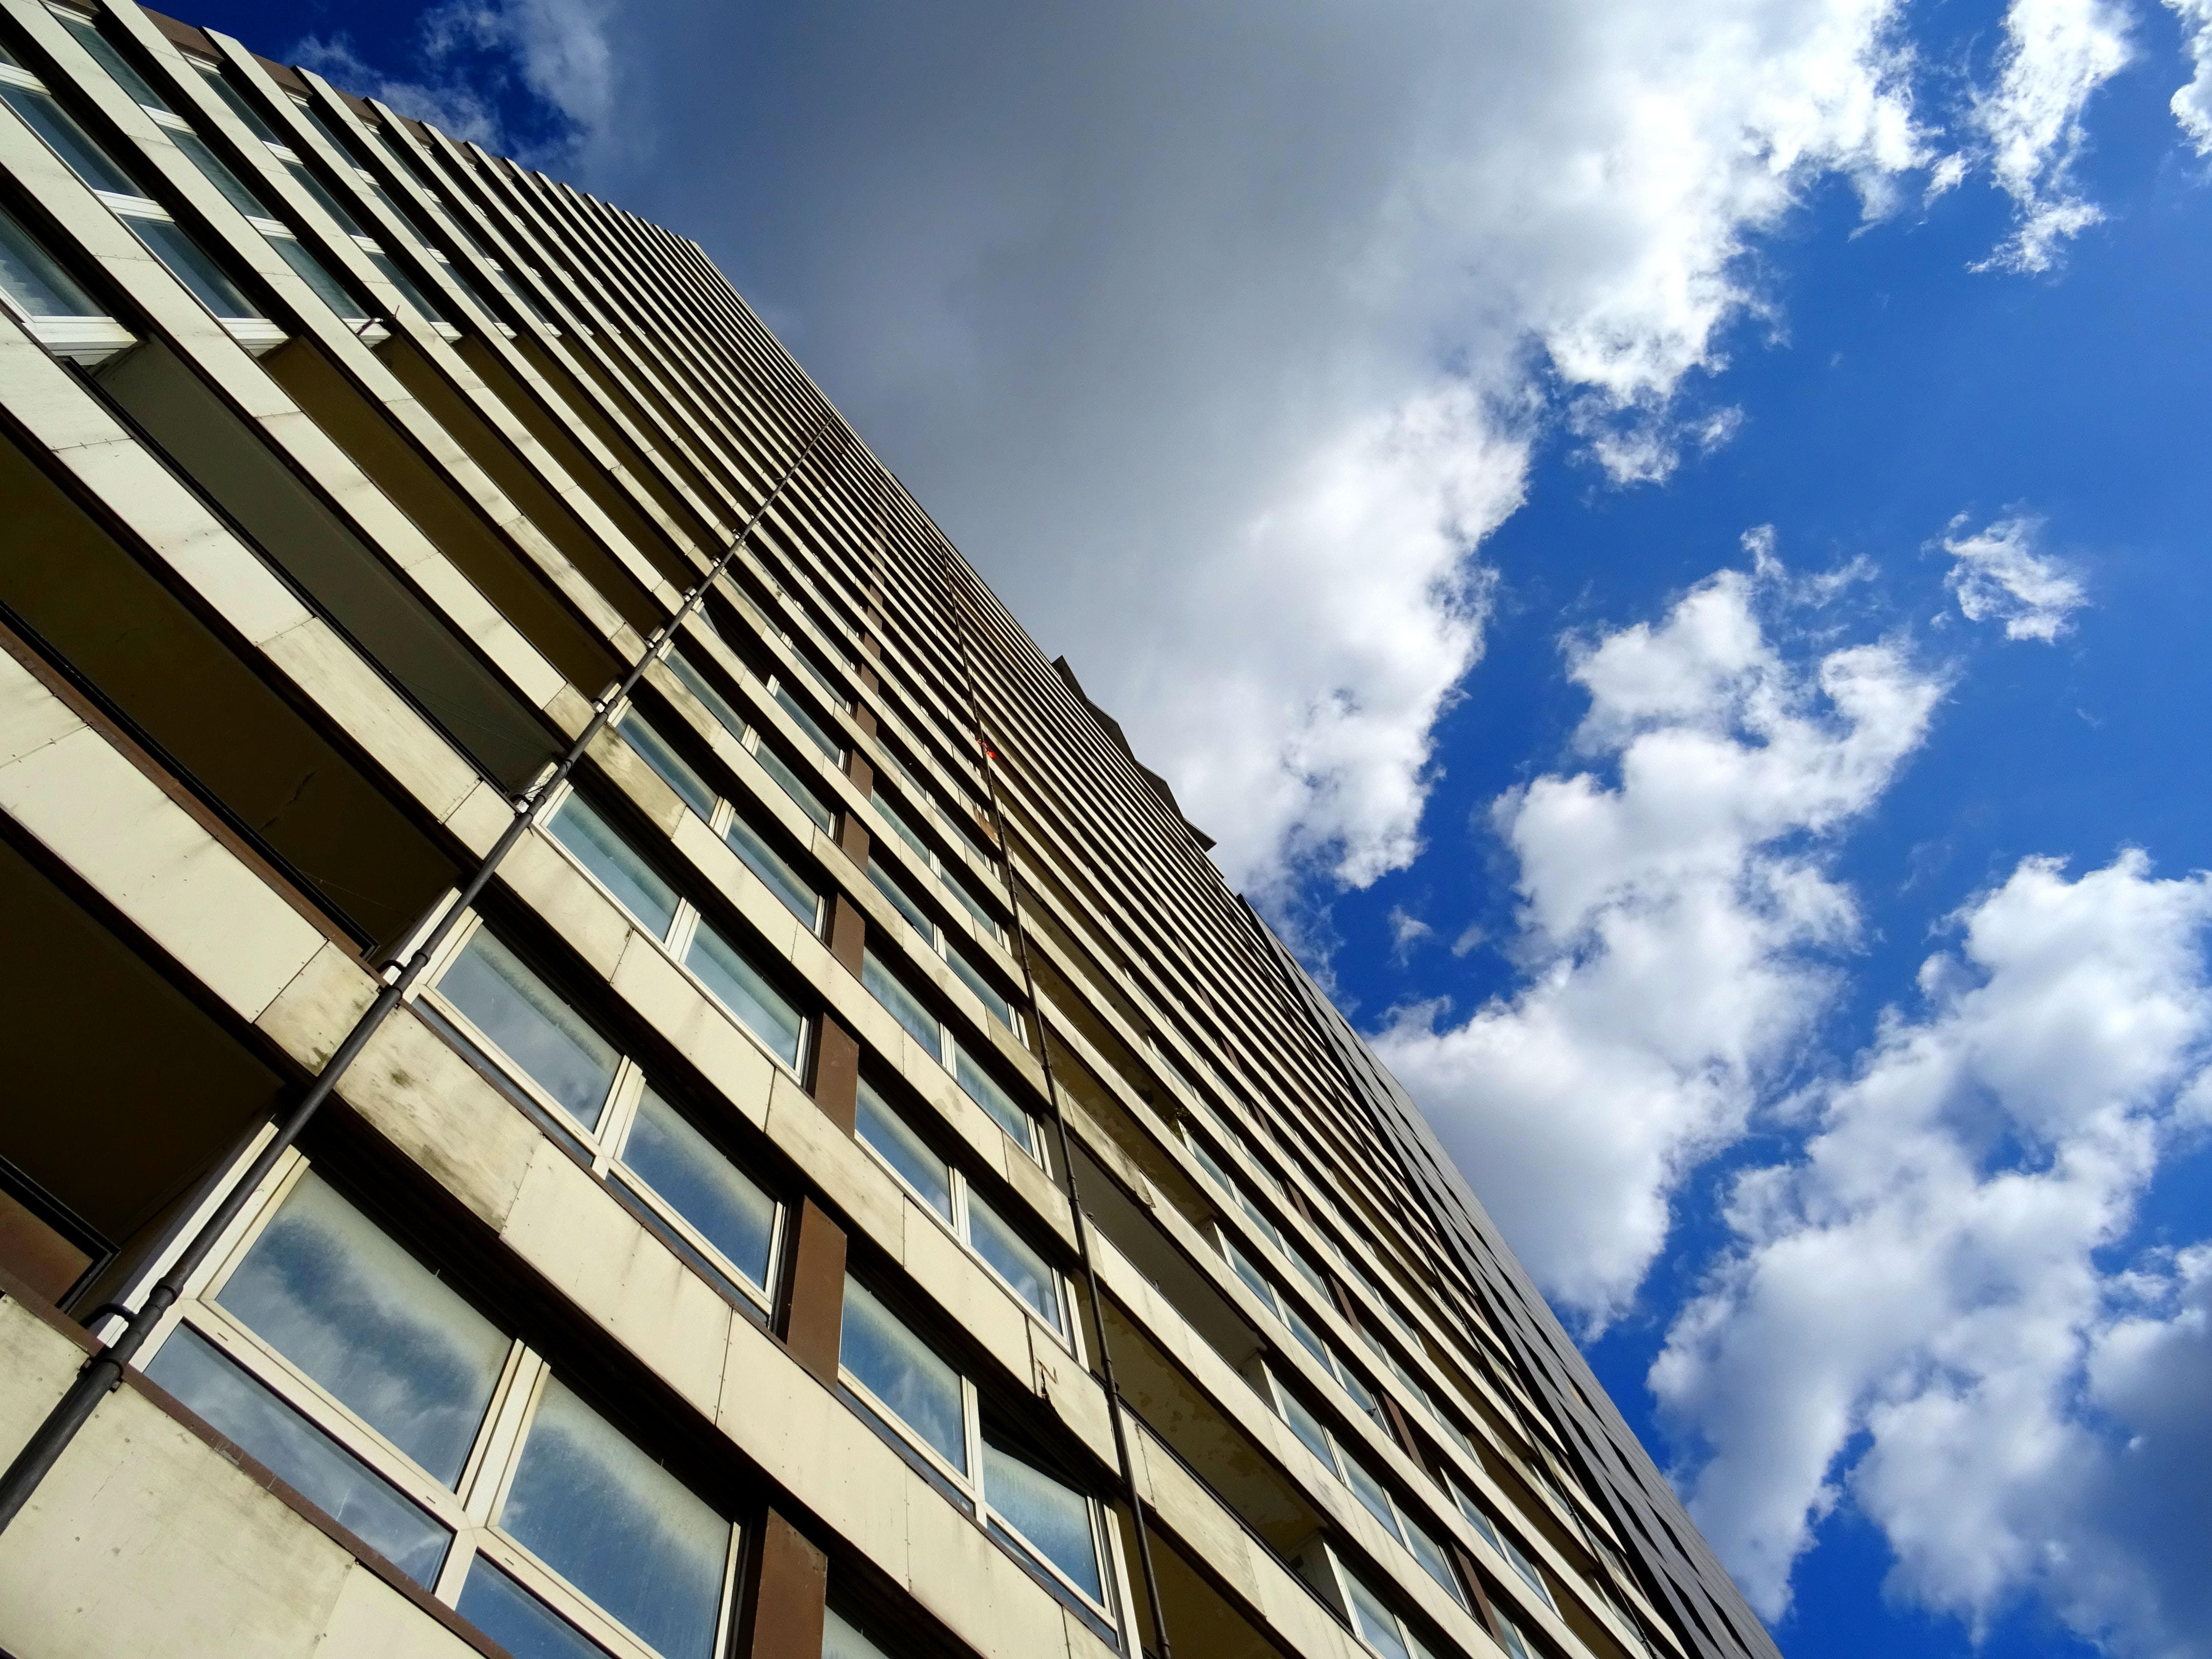 Worm's Eye View of Brown Concrete Building